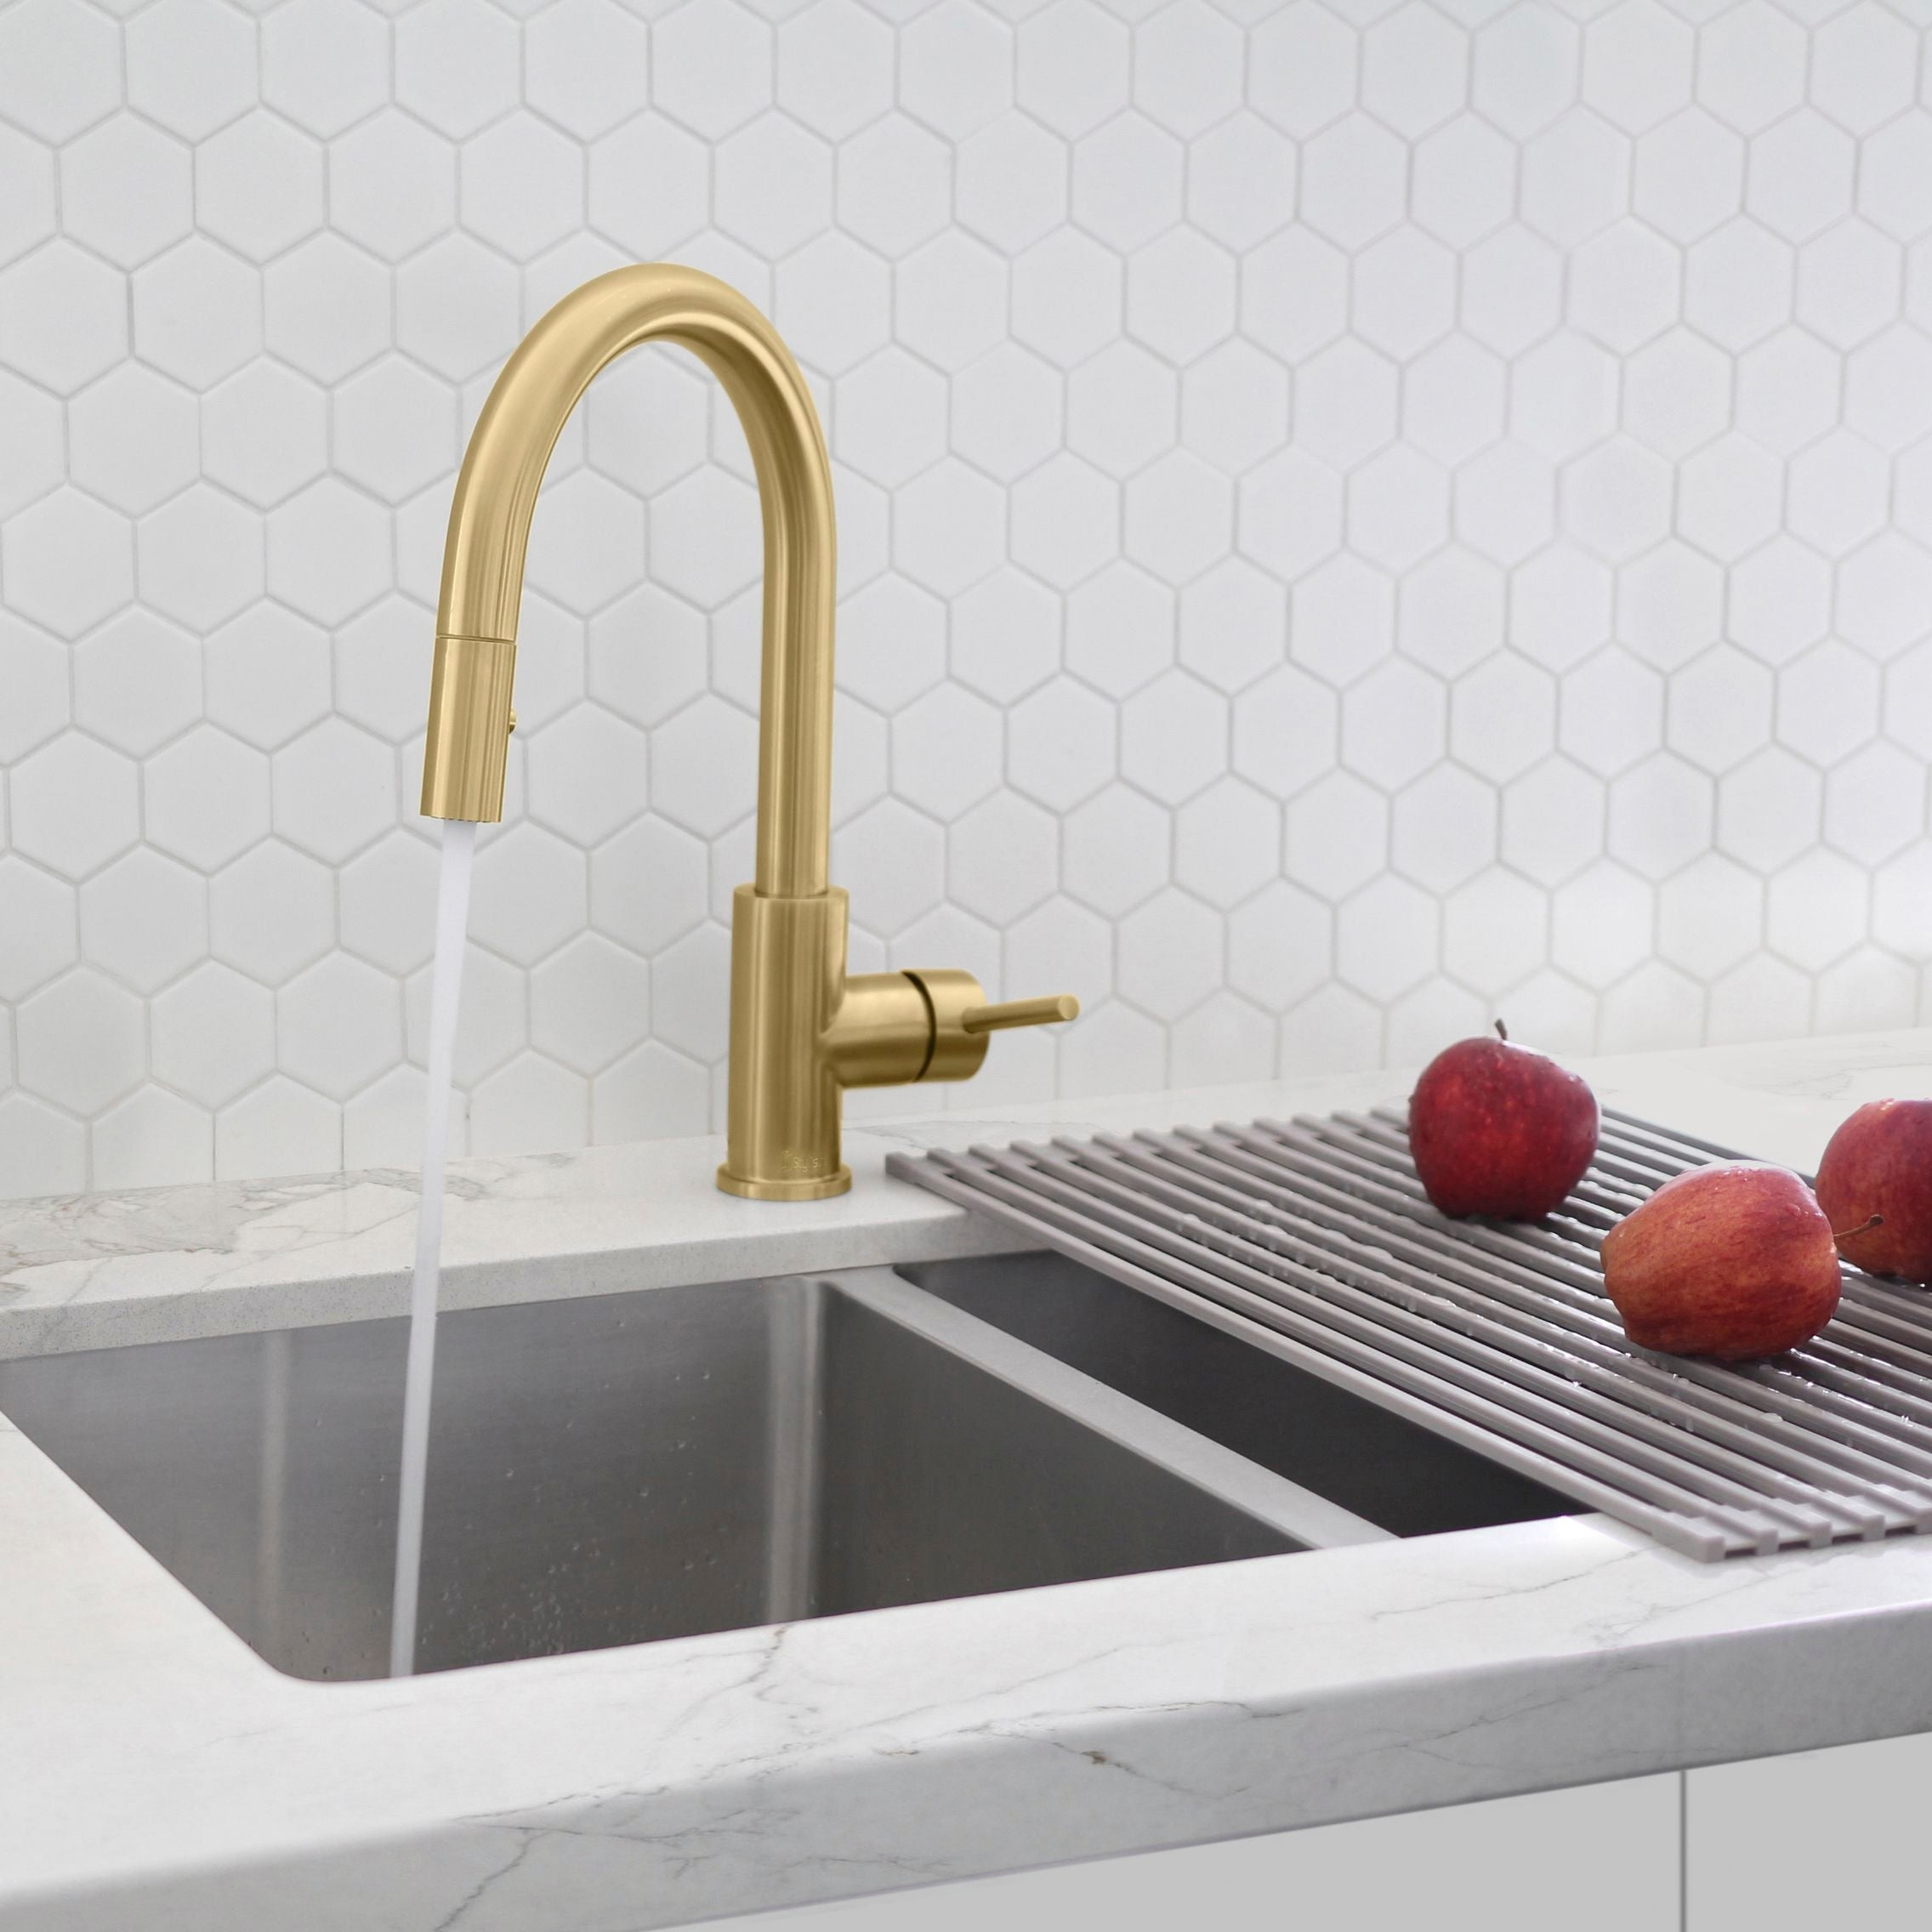 Modern Single Handle Pull Down Sprayer Kitchen Faucet In Gold Stainless Steel Faucet Height 14 Spout Height 7 On Sale Overstock 31719066